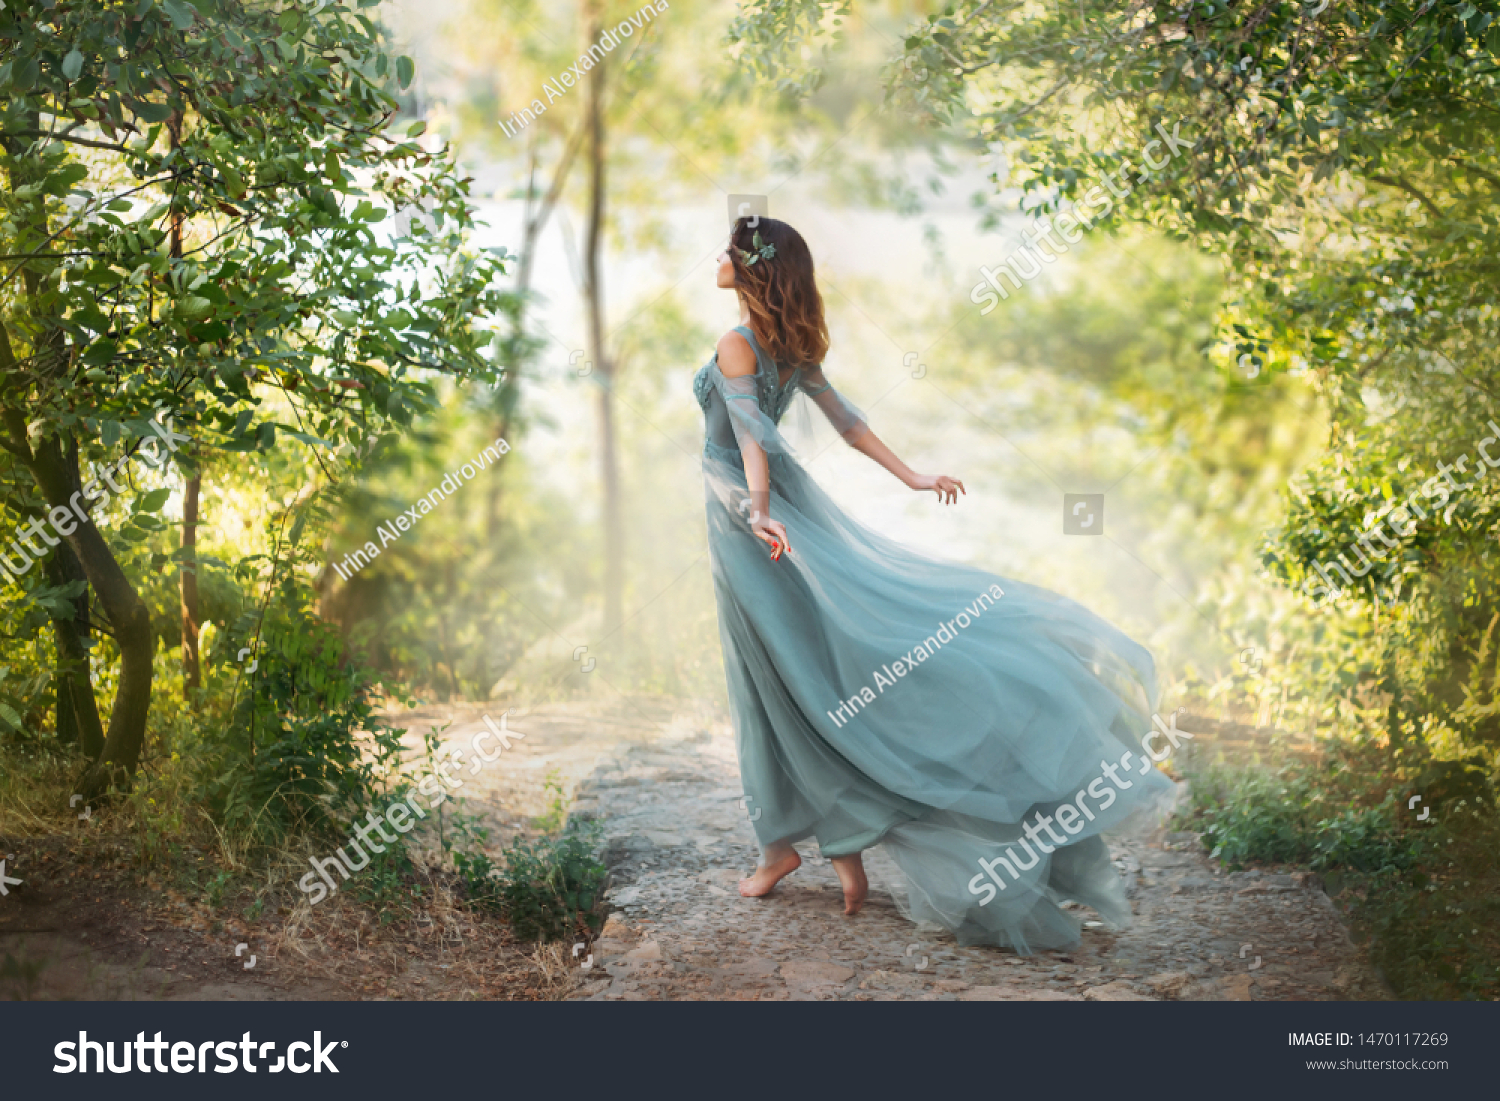 fairy-tale princess in light summer blue turquoise dress on wide path and walks towards wind, graceful dancing girl in image of flower with flying long hem of dress, nymph of bright green forest #1470117269